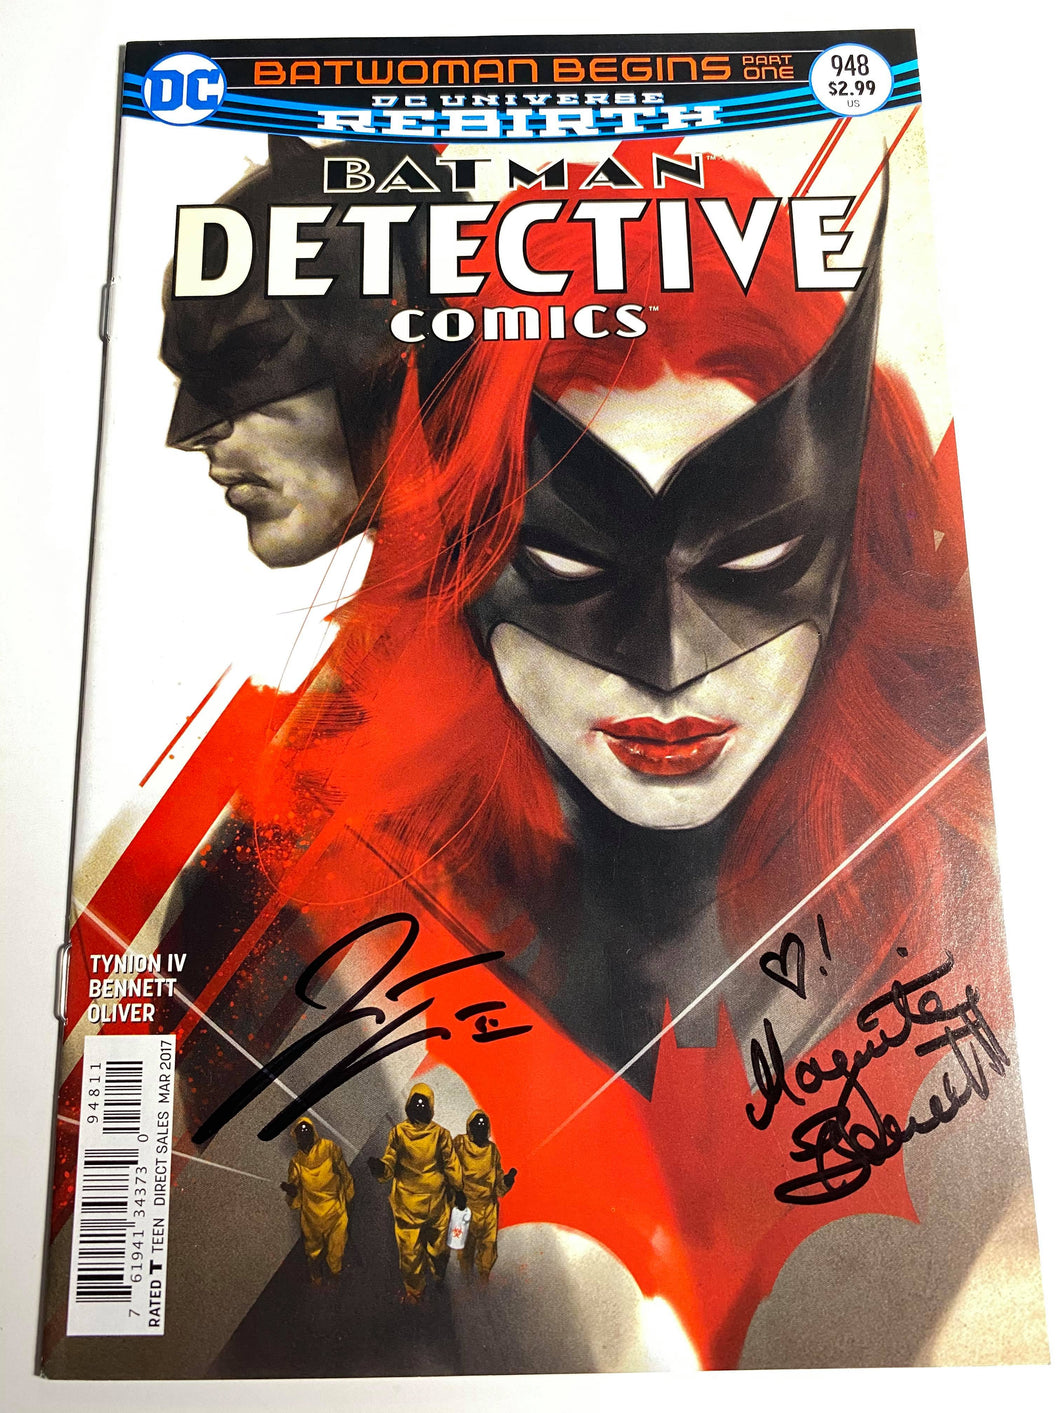 BATMAN DETECTIVE COMICS #948 SIGNED JAMES TYNION IV & MARGUERITE BENNETT COMIC BOOK